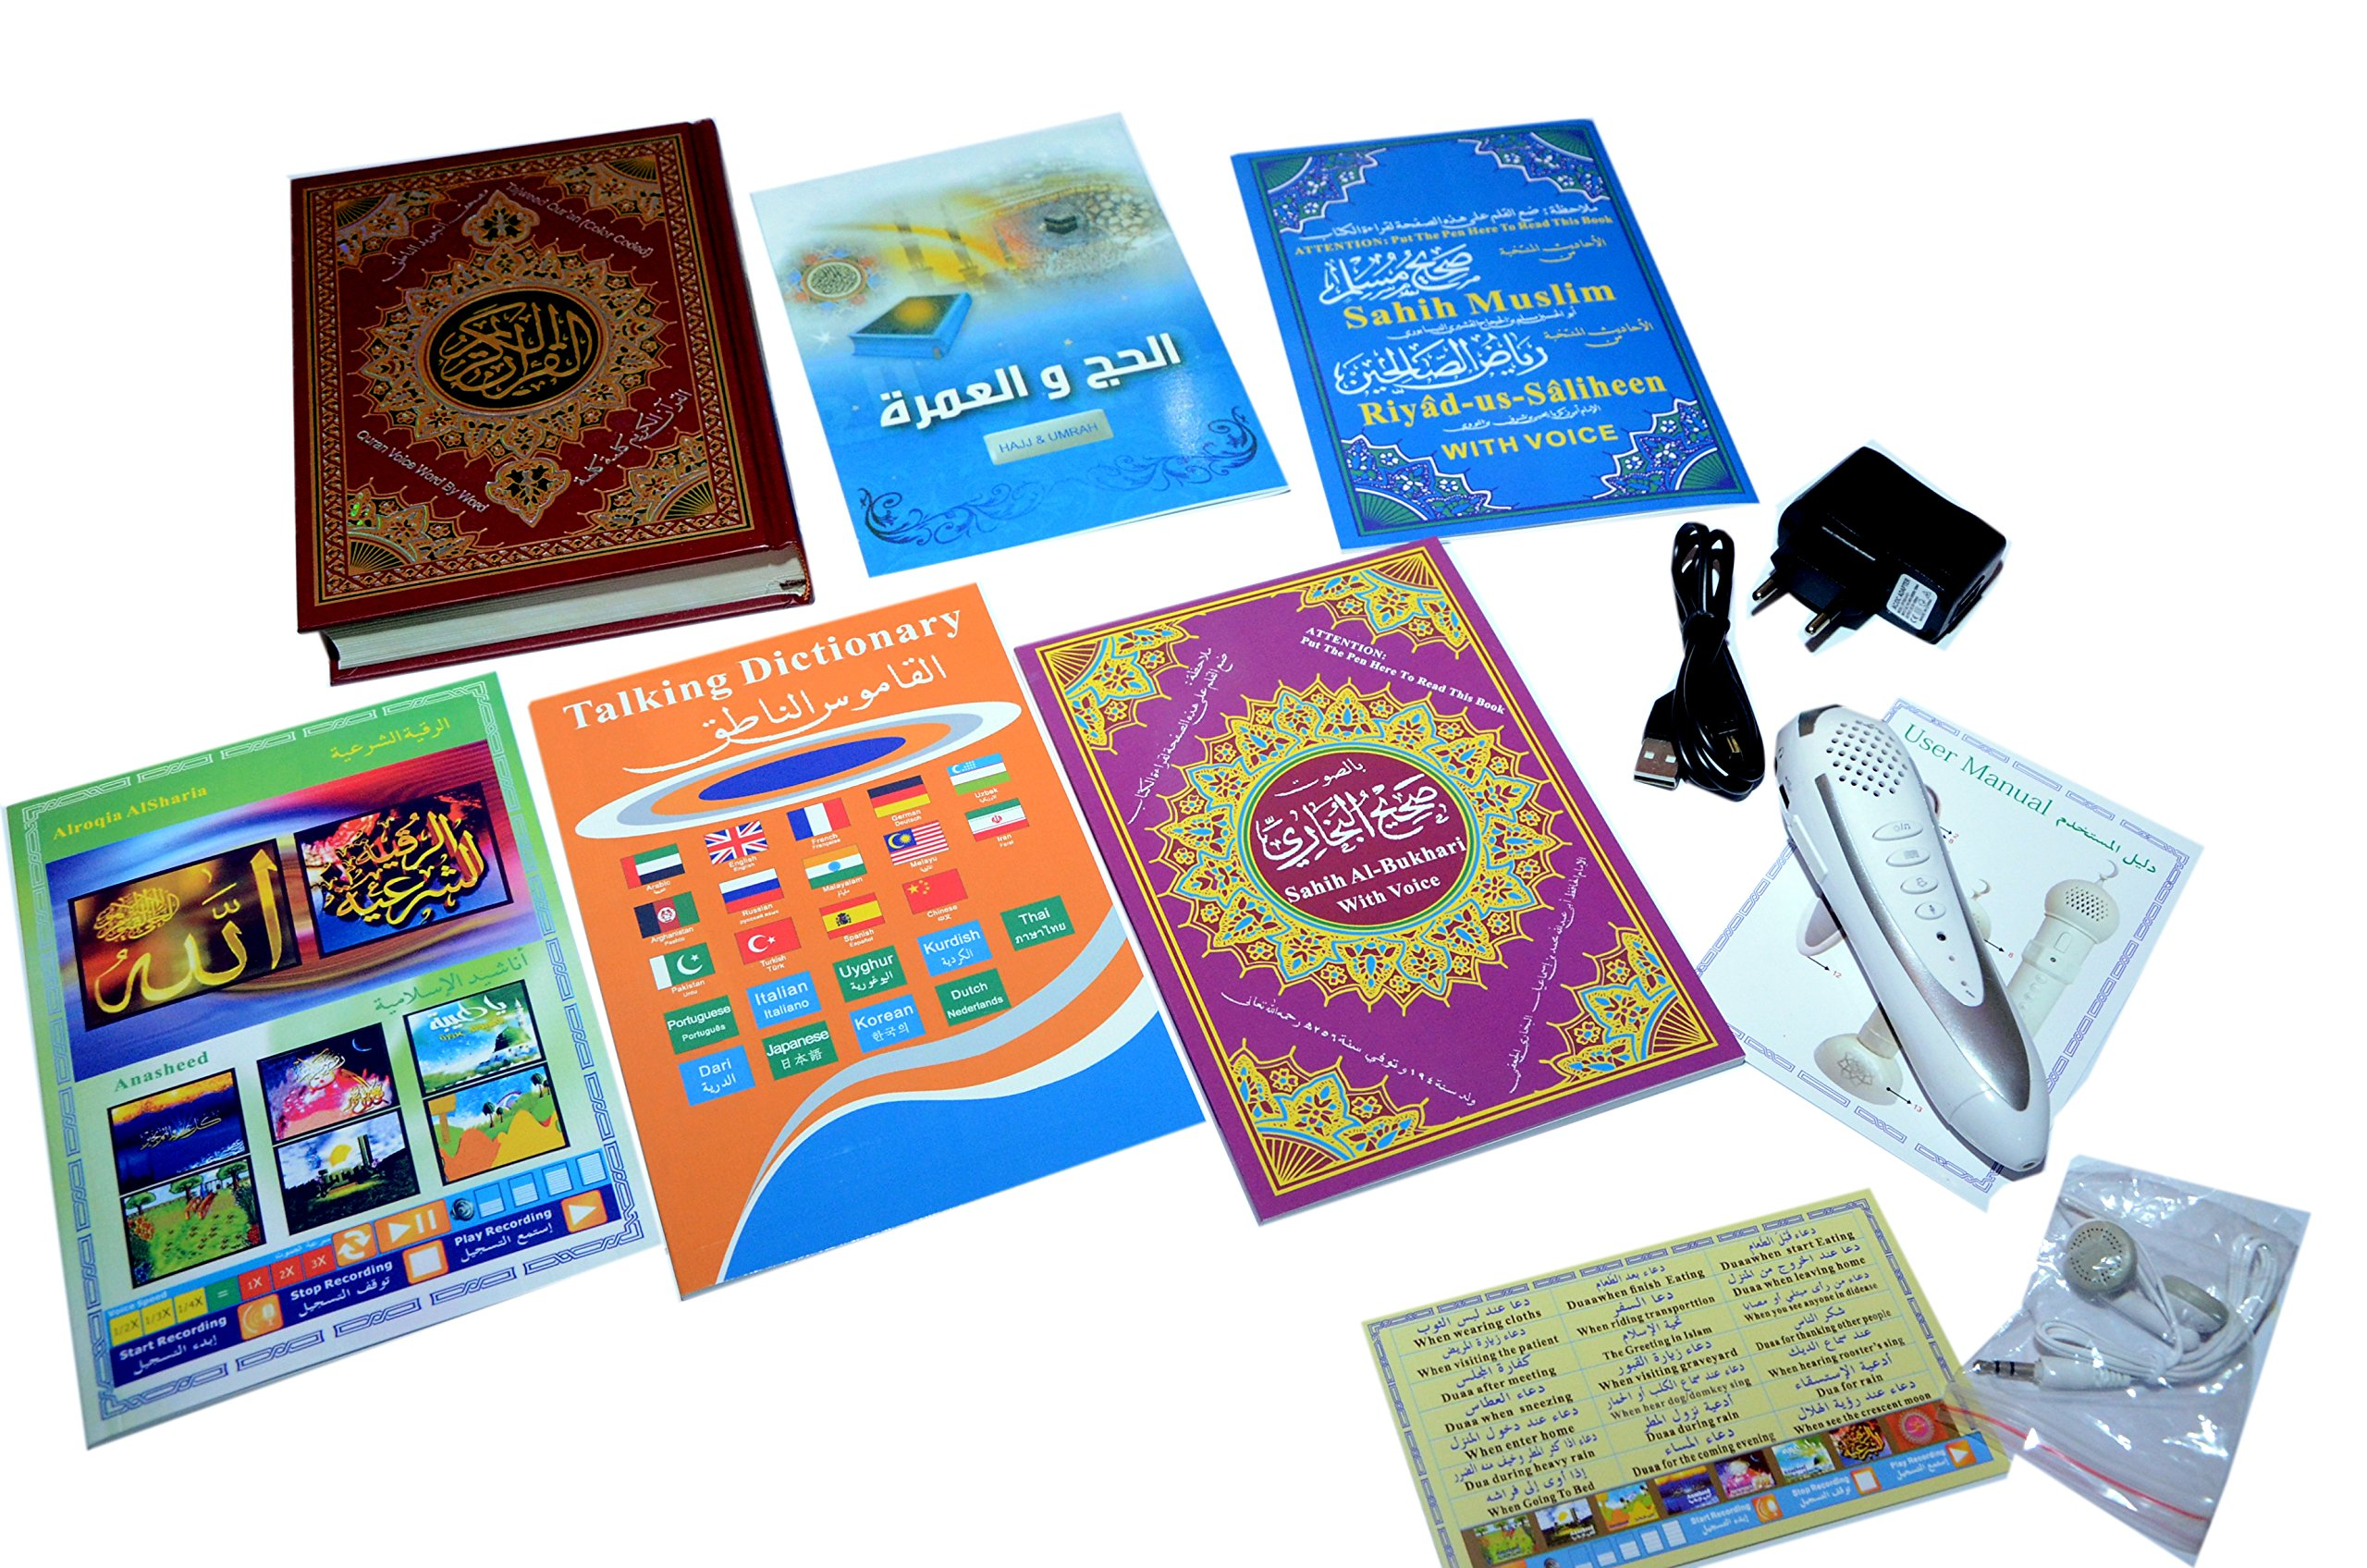 AL-KARIM Quran With Read Pen With Urdu Language Translation And 8gb